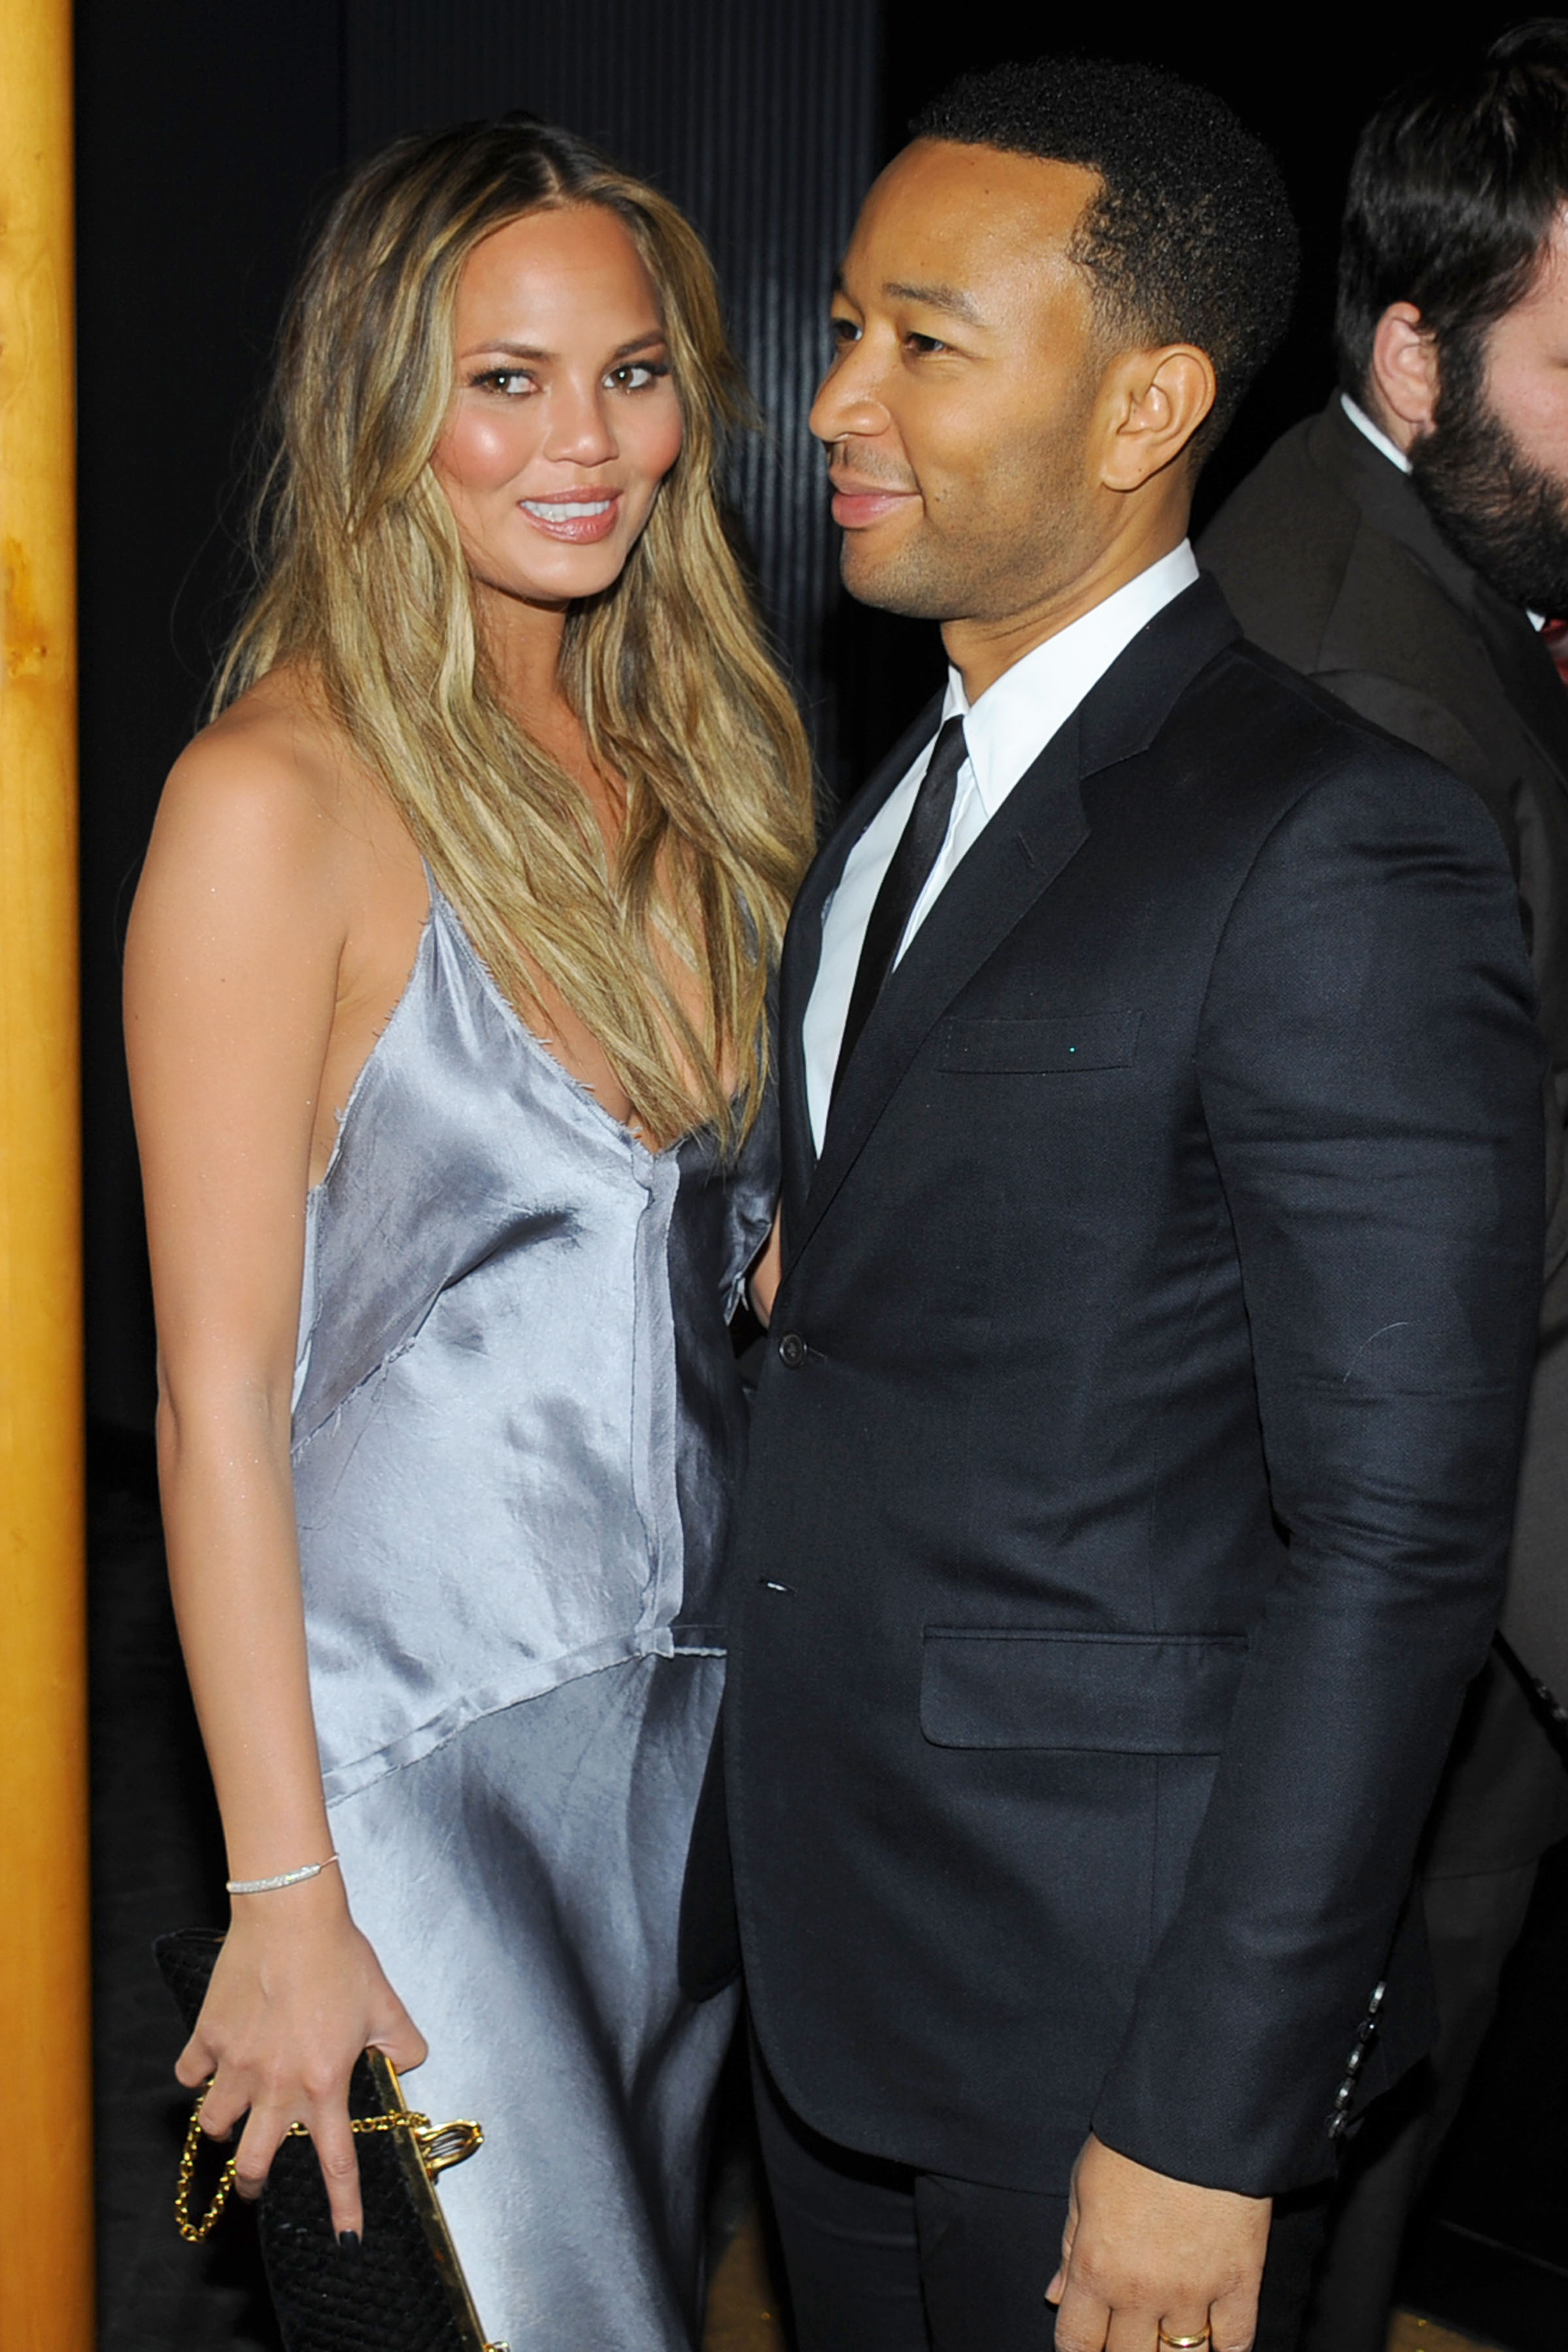 Chrissy Teigen and John Legend at the Reimagine Learning launch (Photo: Patrick McMullan).